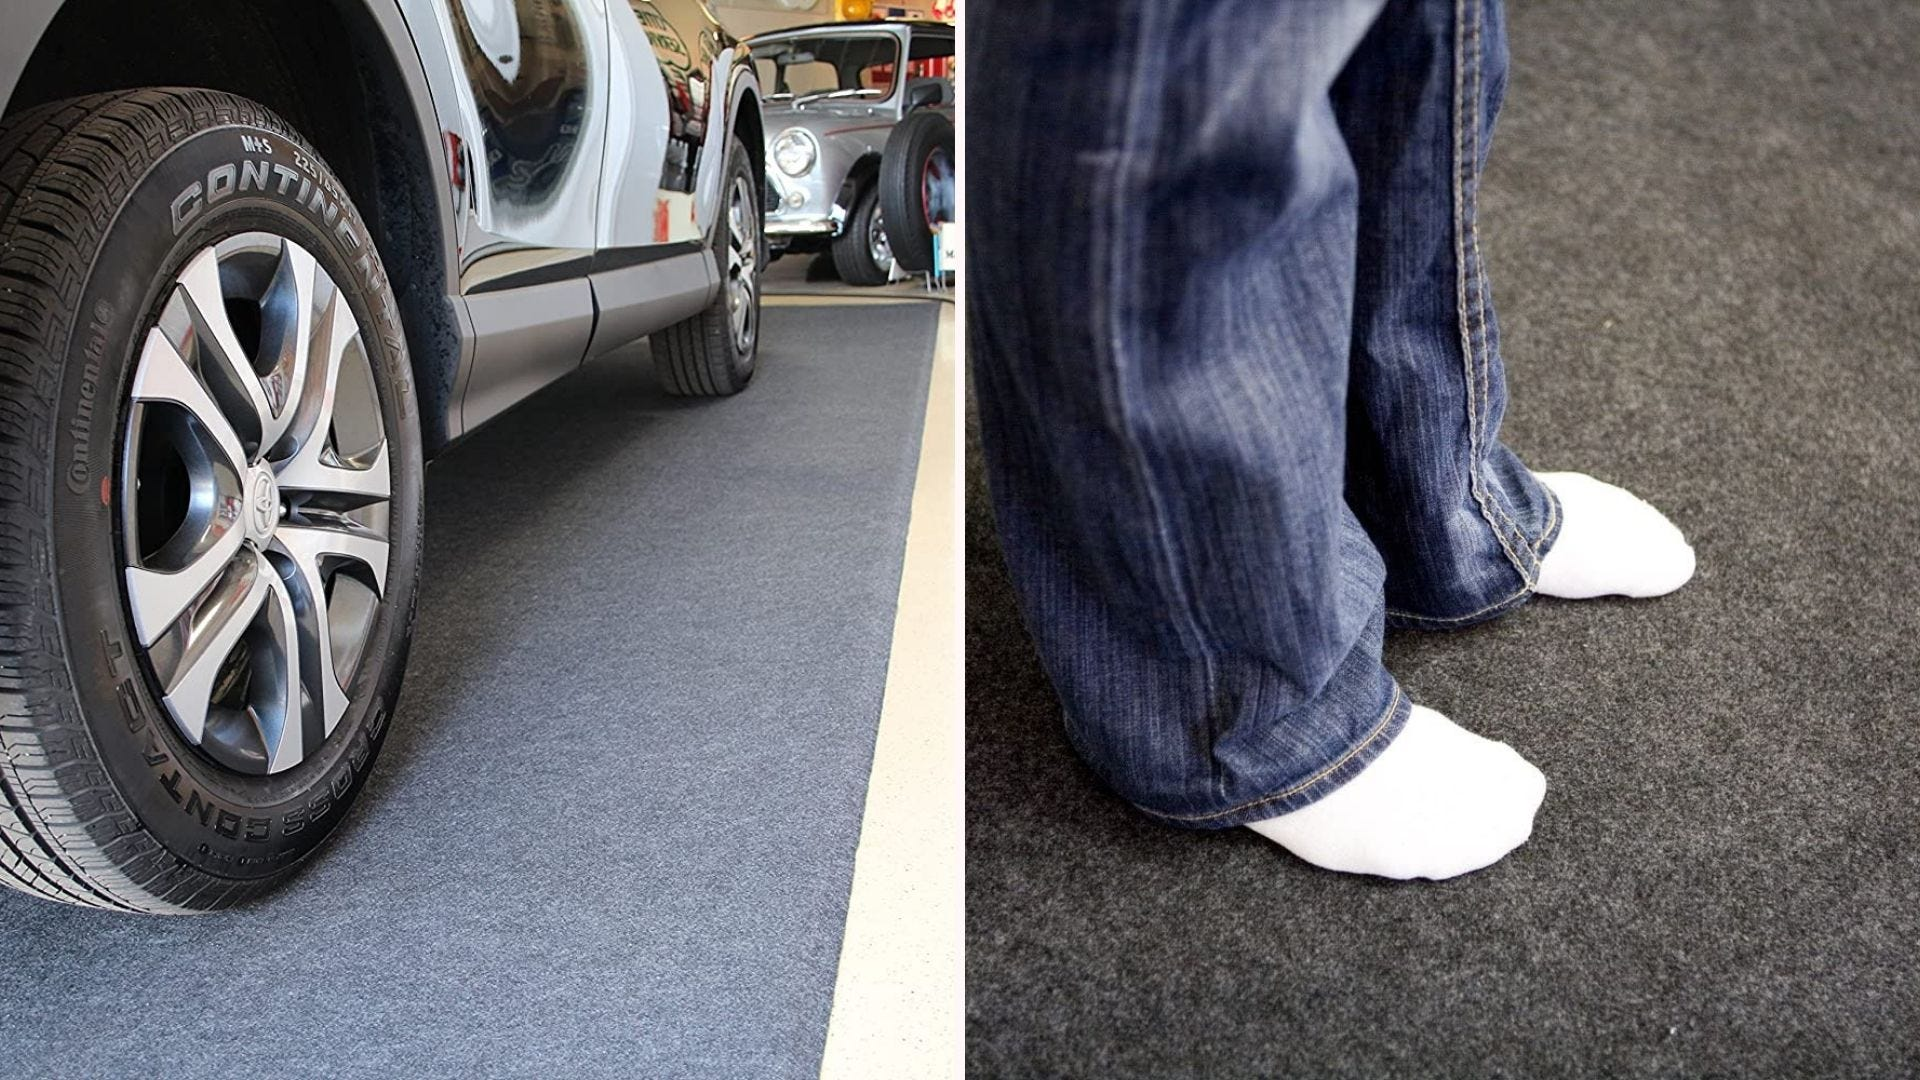 A carpet-like garage floor mat shown under a parked car and under a person's feet